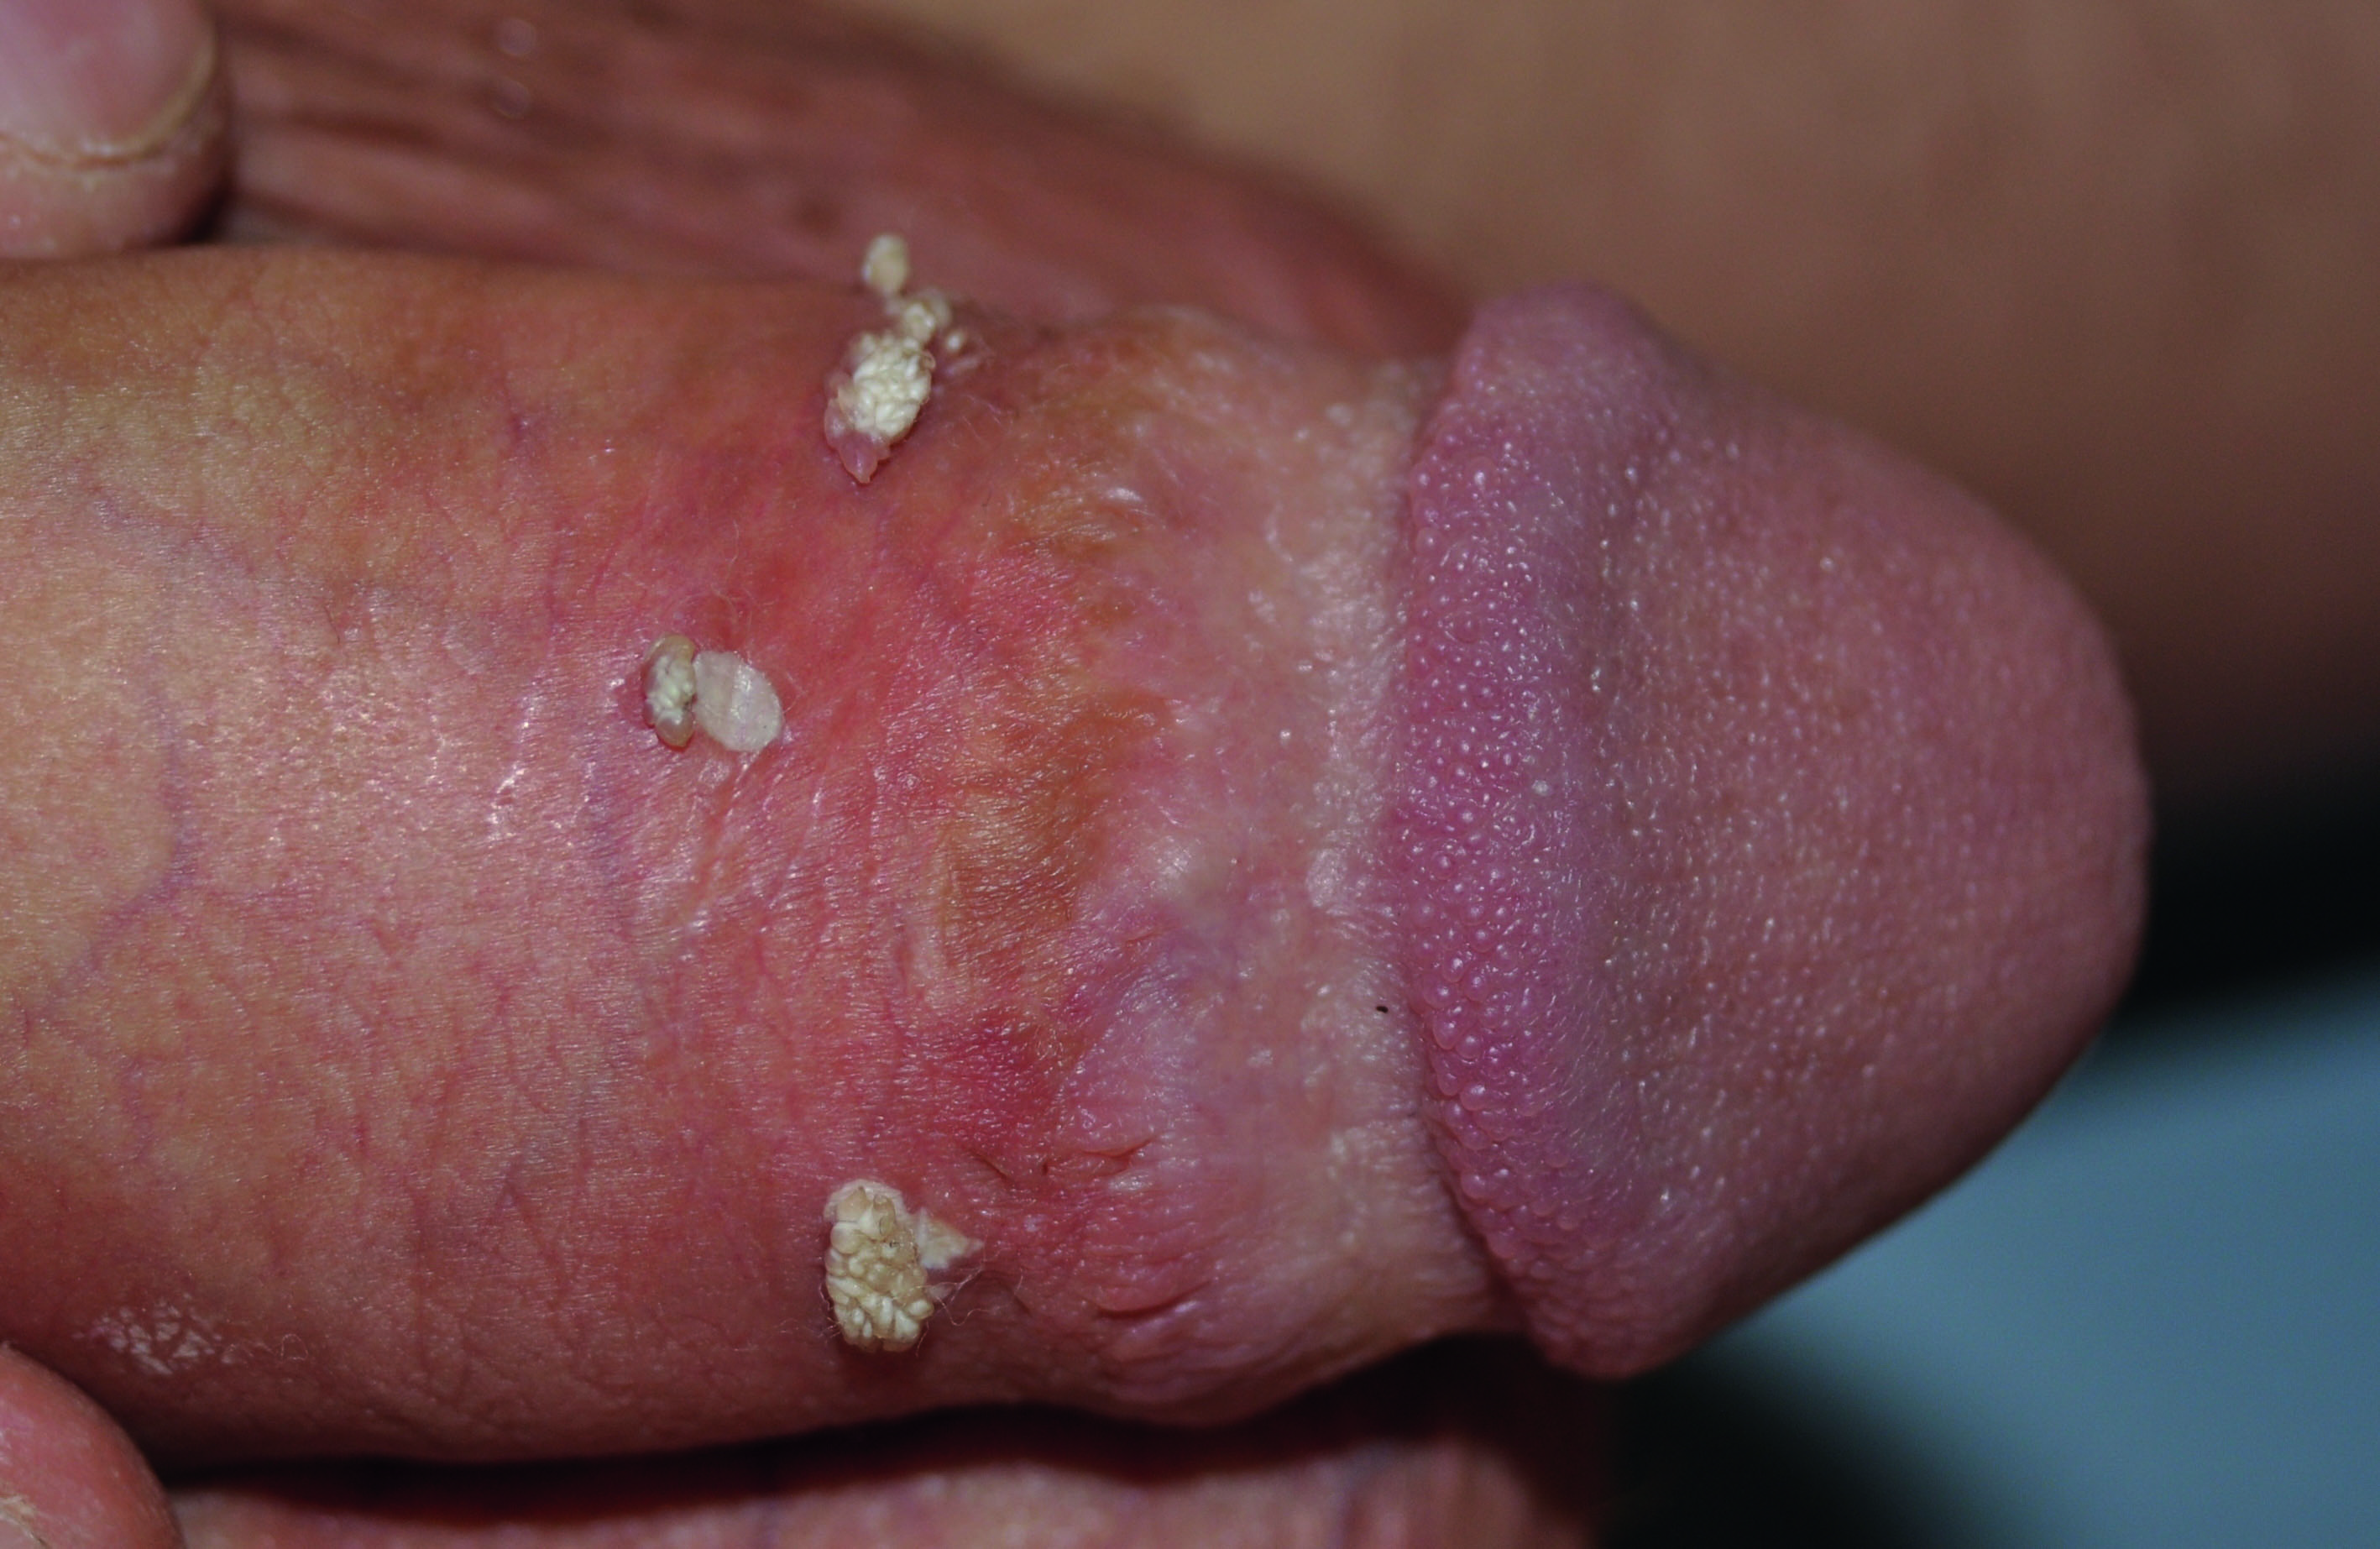 22a Keratinised warts on dry foreskin even in circumsised patient.